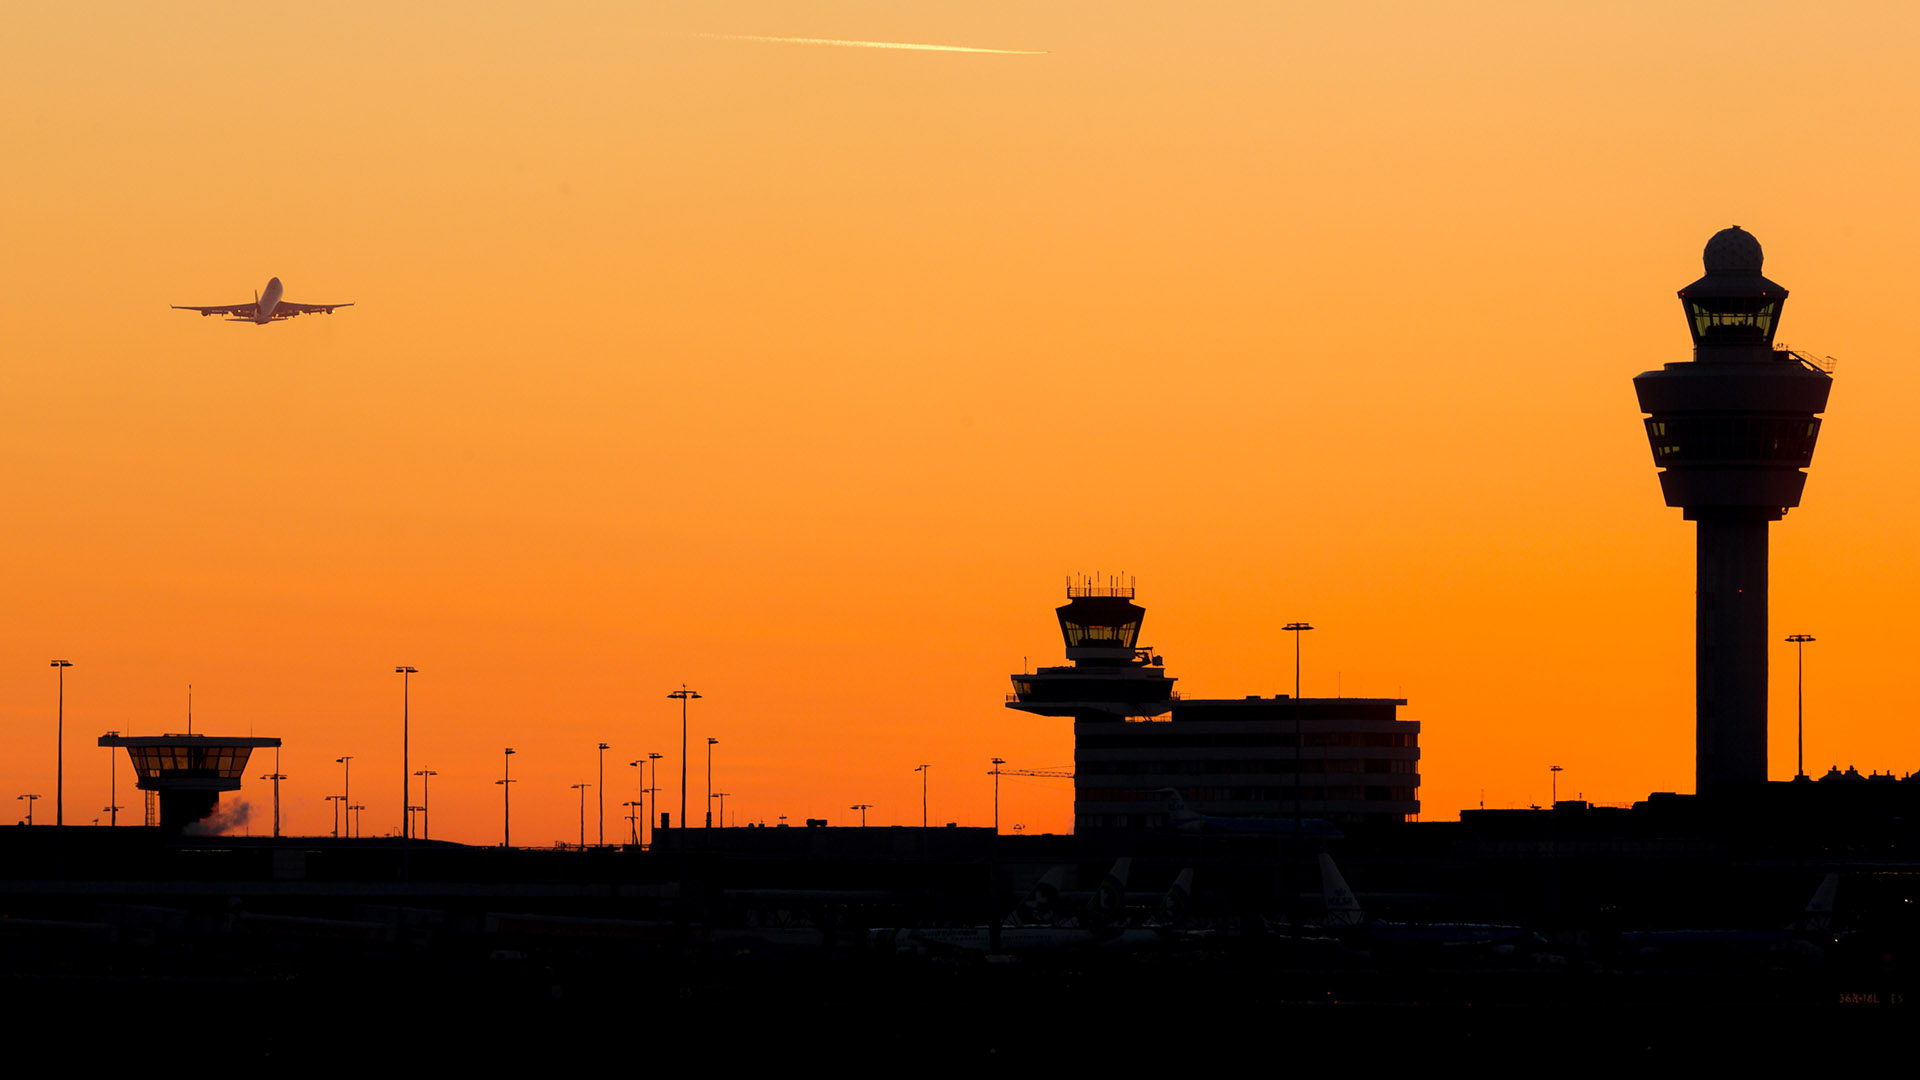 Amsterdam-Schiphol airport sunset at a clear sky with departing airplane